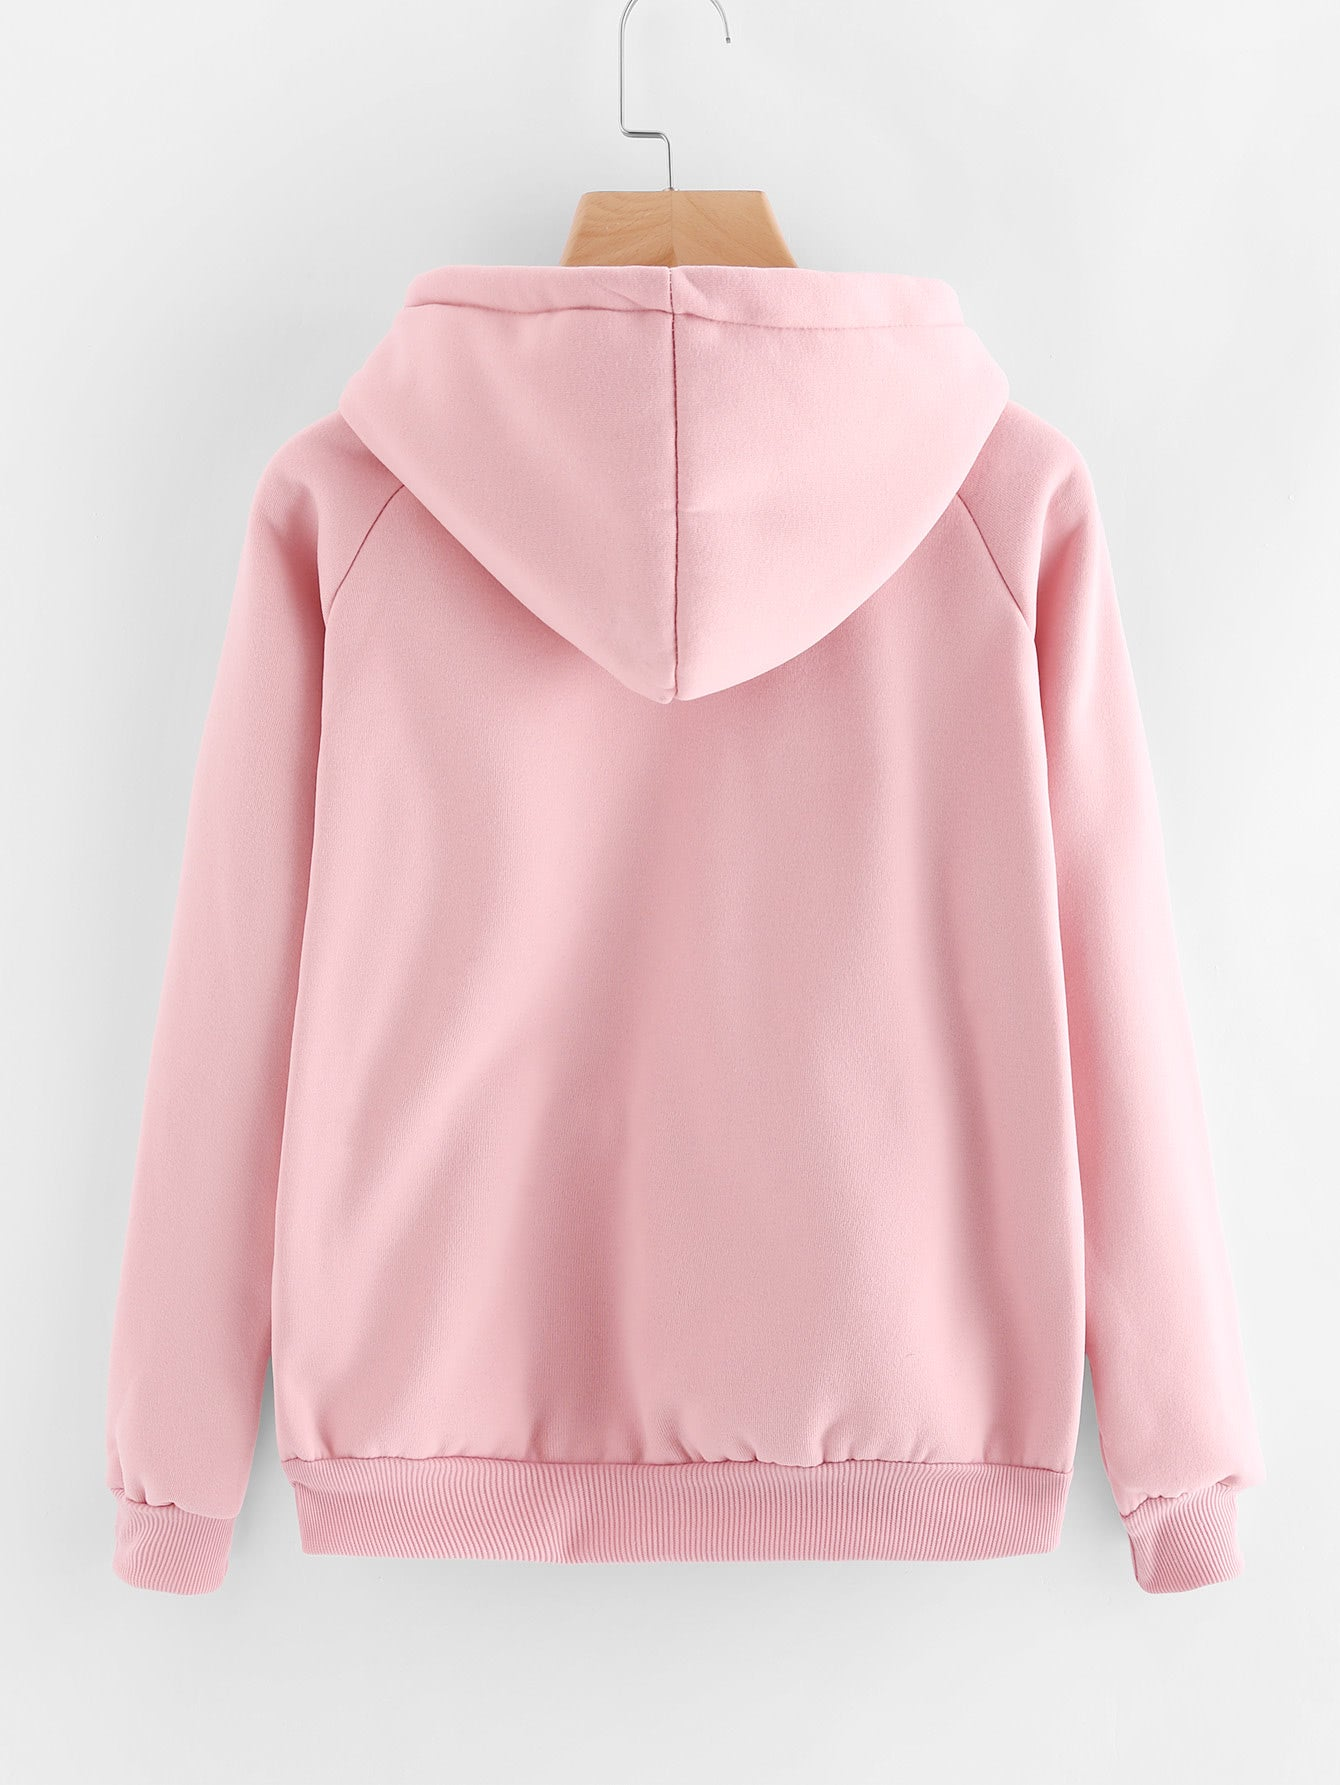 Kangaroo Pocket Drawstring Hoodie - Tiny Town Essentials